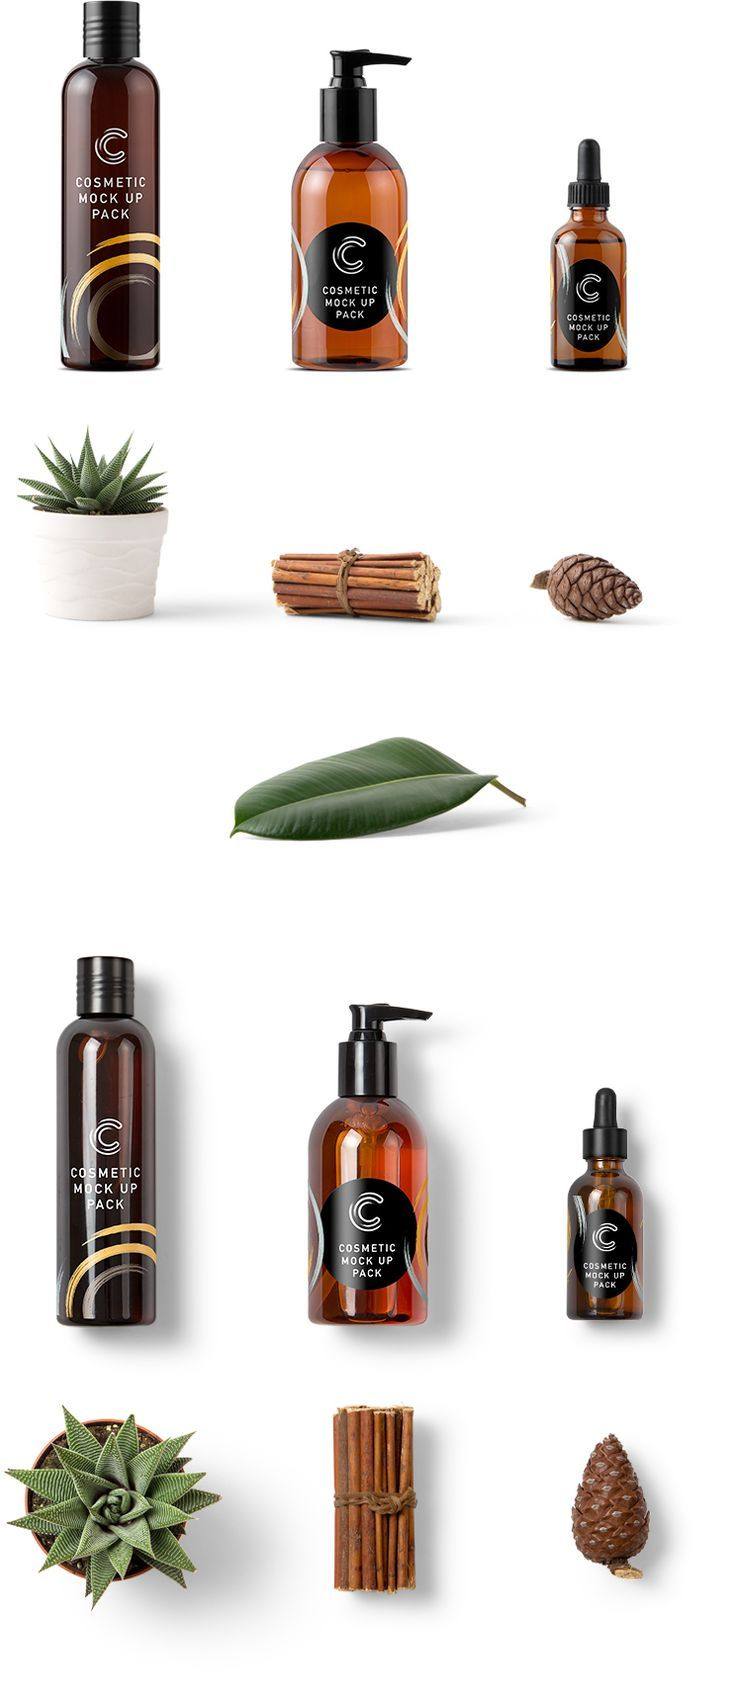 Free Cosmetic Packaging Mockups. By Mockup Zone